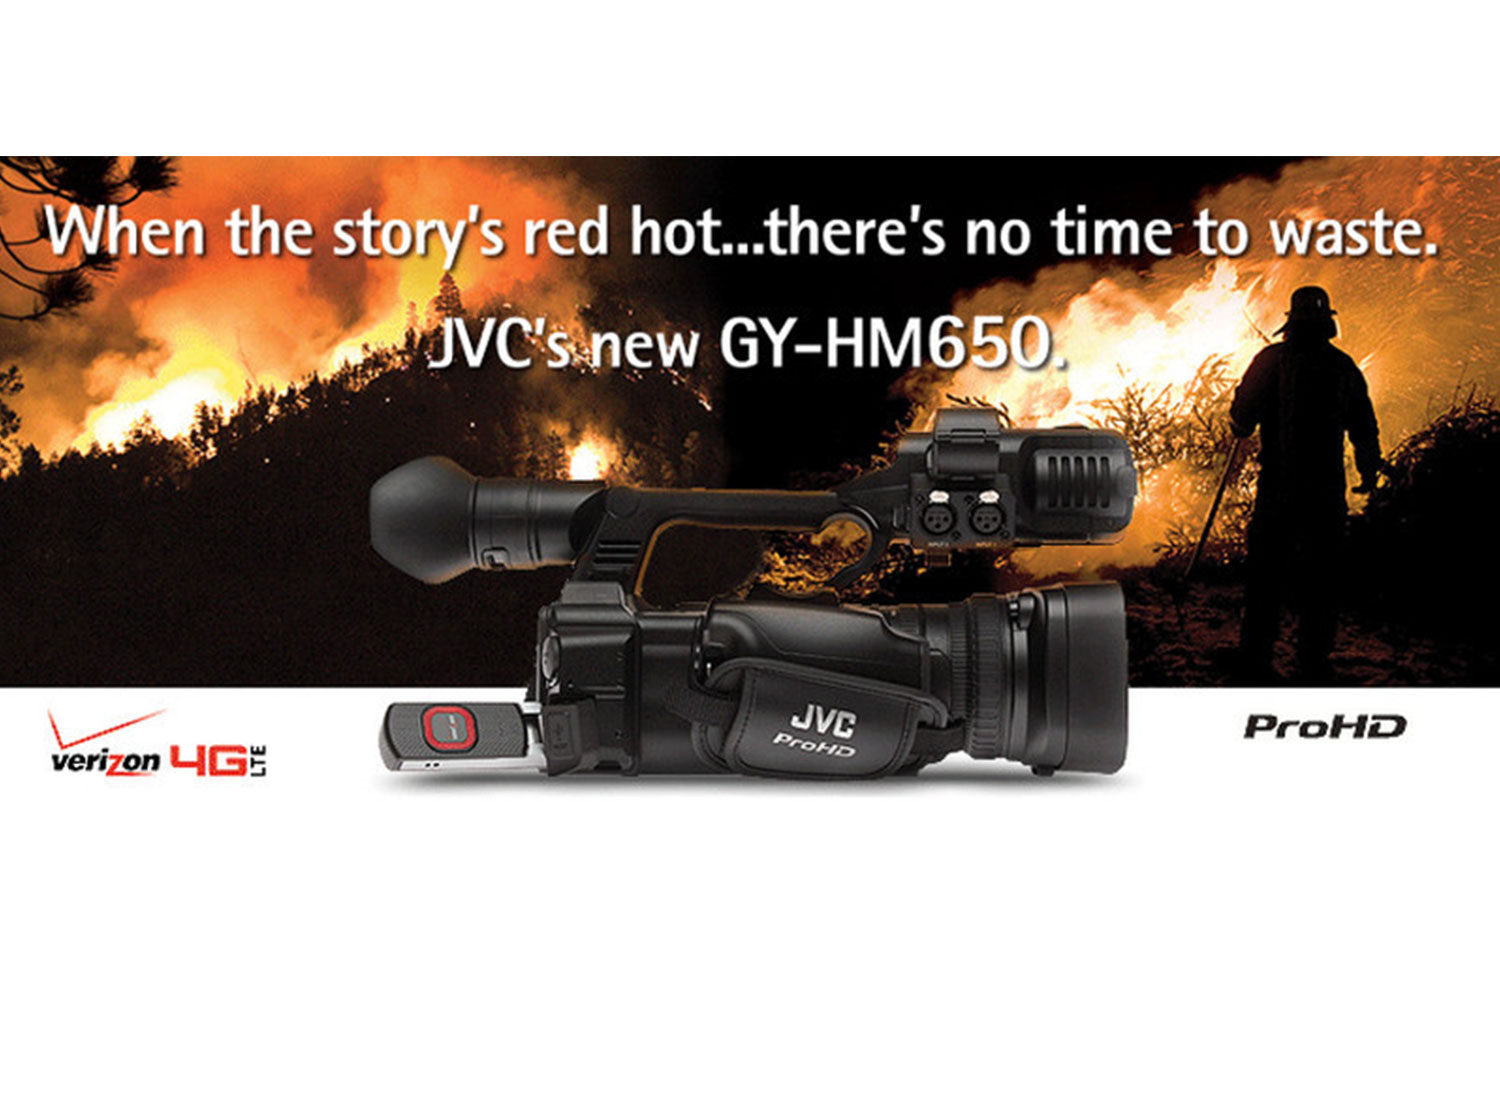 JVC GY-HM650